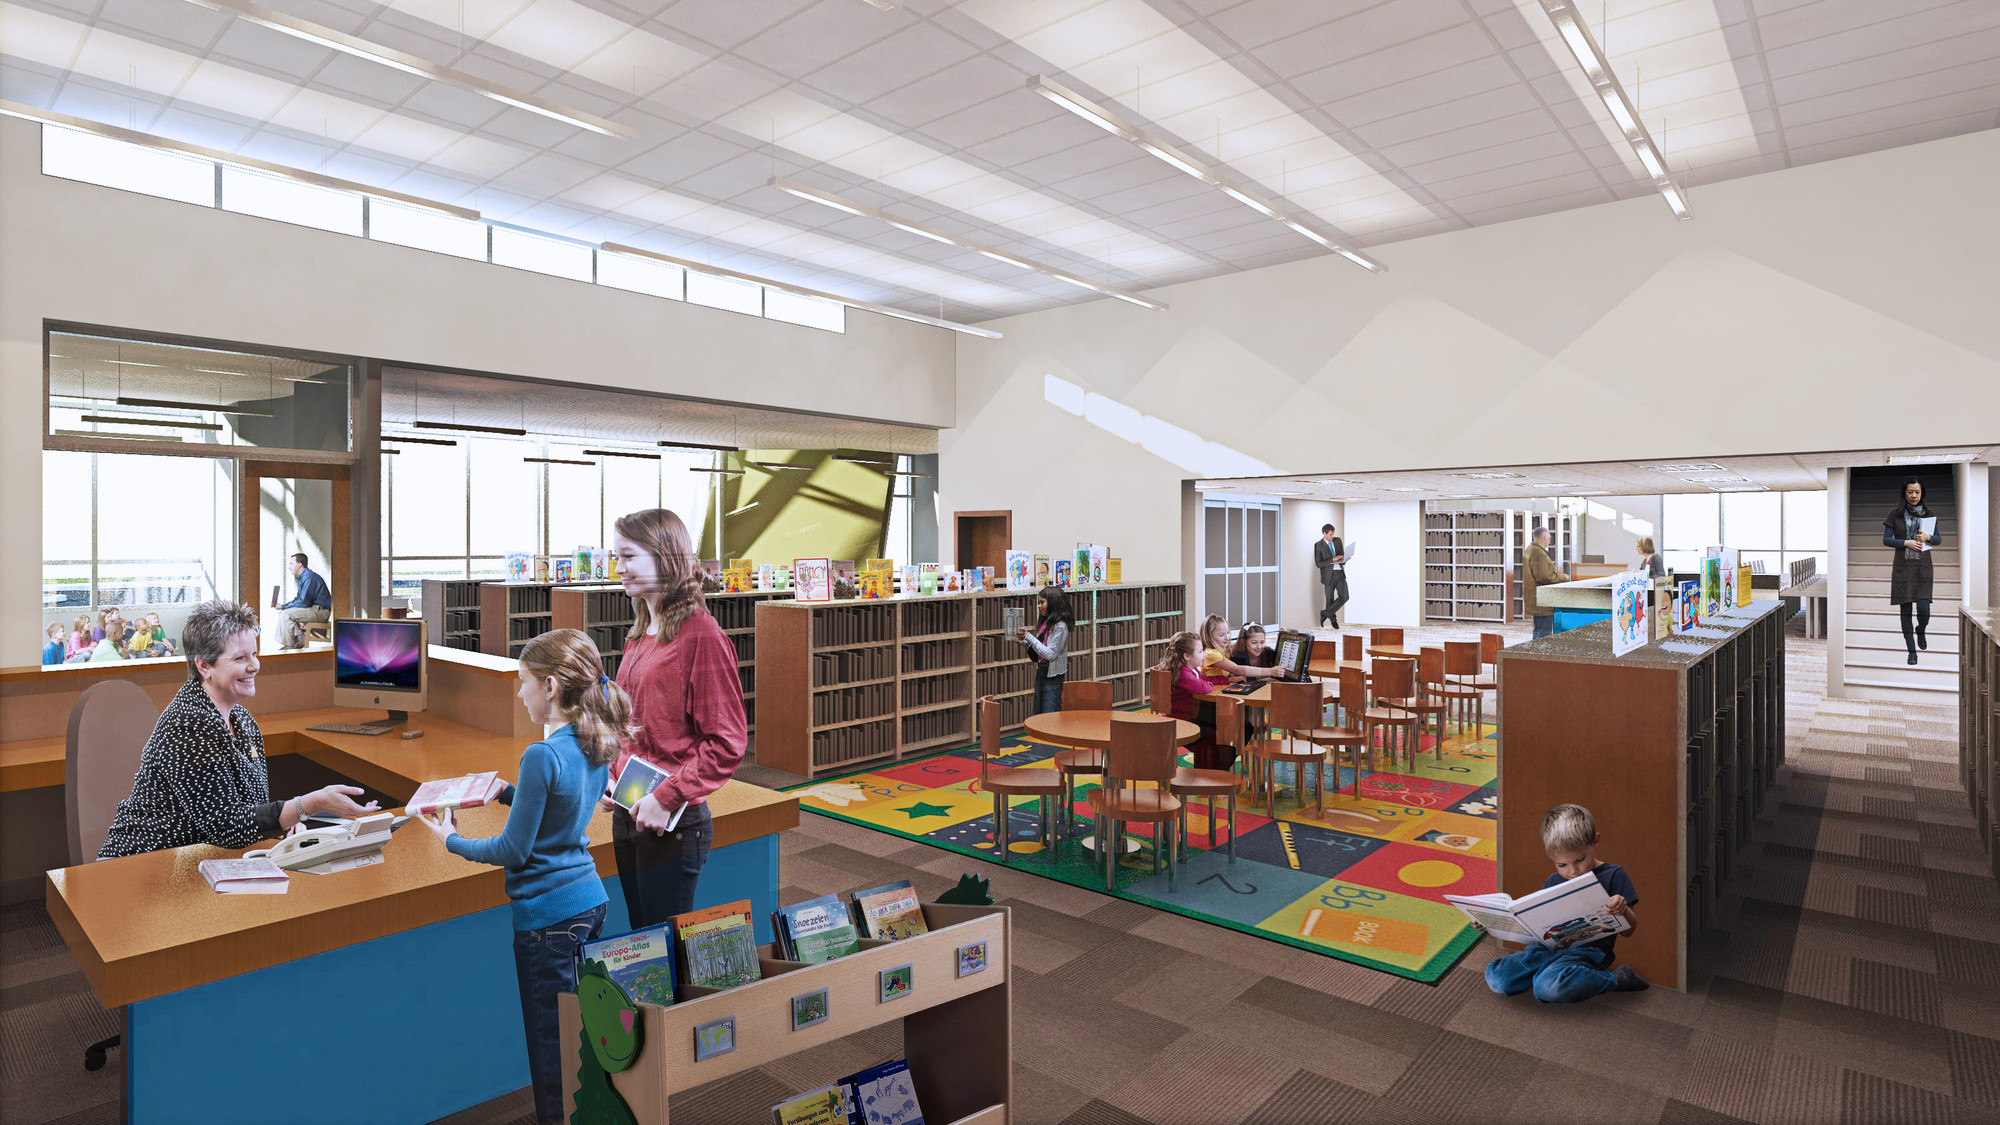 The proposed renovation and expansion of the children's library will increase the area devoted to this extremely important part of the library by 90 percent.